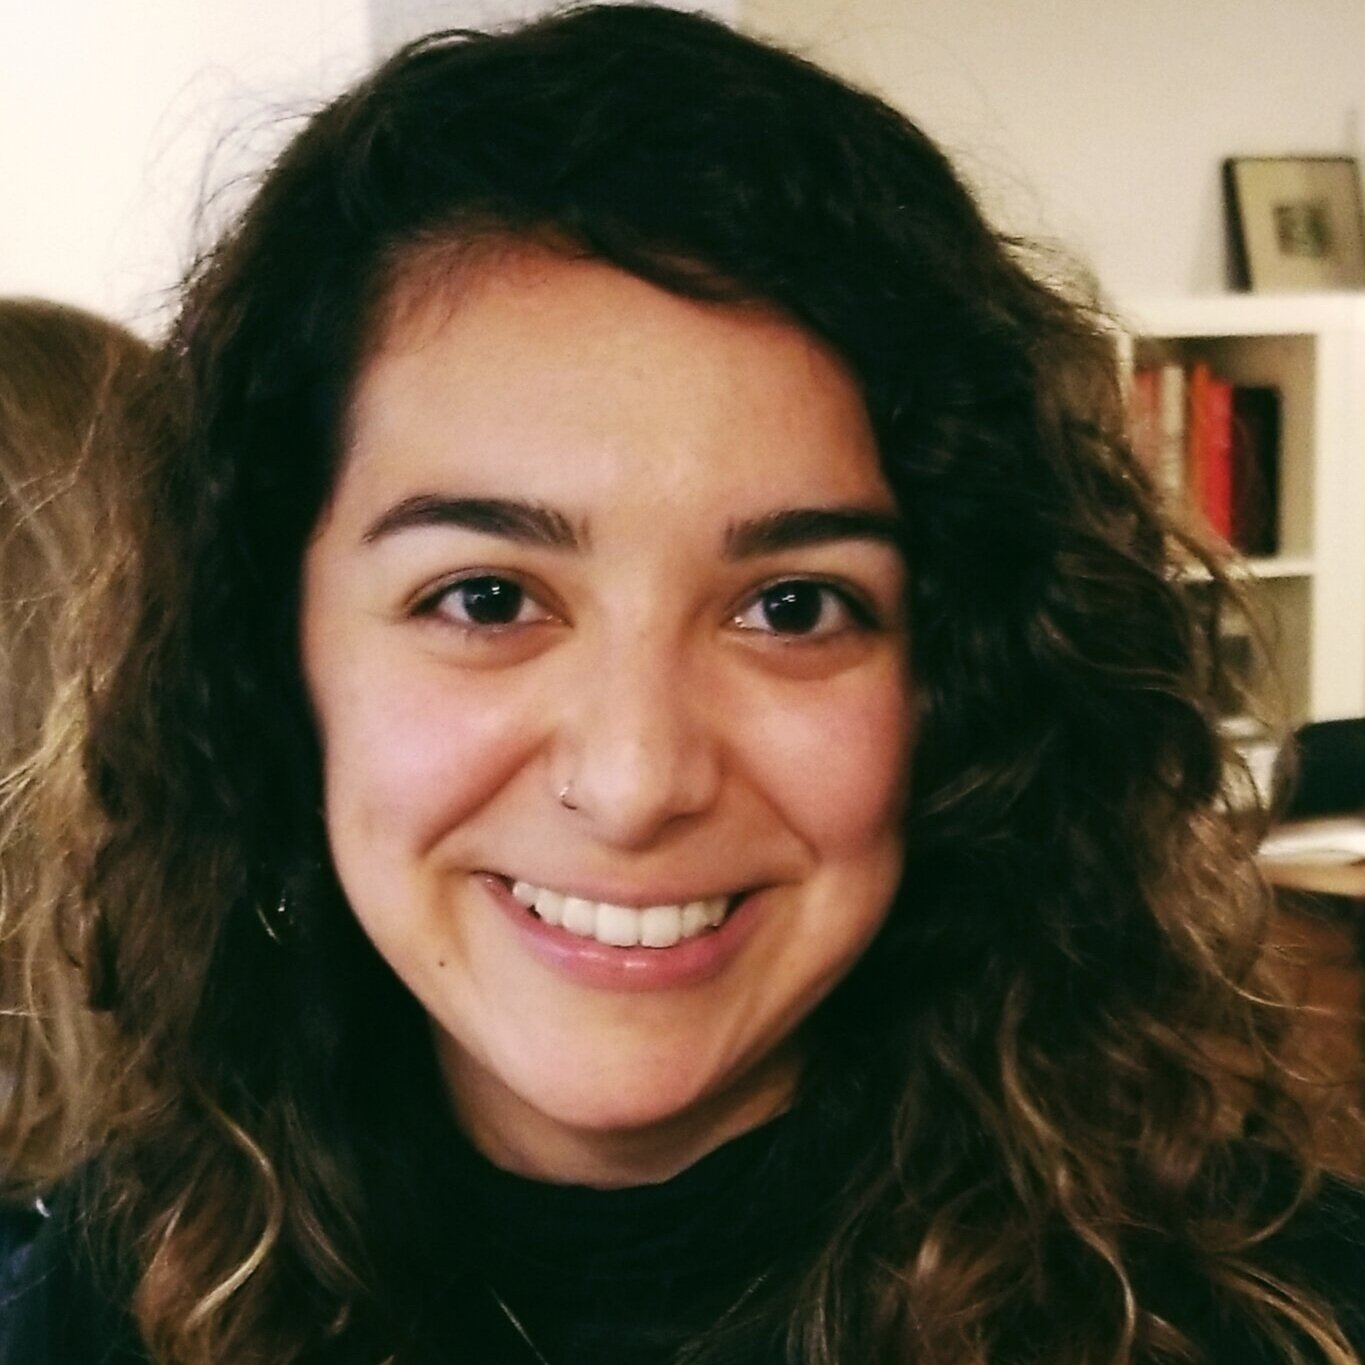 Priscilla Villa-Watt  (Texas, United State) is the Petrochemical Campaigner at Earthworks, a non-profit environmental organization based in Washington, DC. She joined Earthworks in 2016 after receiving her Master's in Applied Anthropology from the University of North Texas. Her work is focused on providing community members impacted by oil and gas development with the tools to study and advocate for better air quality. She also serves as Earthworks' Latin American liaison where she's formed networks and led workshops to support international partners in anti-fracking campaigns. Most recently, she's helped develop Earthworks' role in the global Break Free From Plastic movement to help develop strategies to prevent more plastics' production in the Gulf South and Appalachia. She is currently based out of Houston, Texas, one of the top most plastic producing regions in the world.